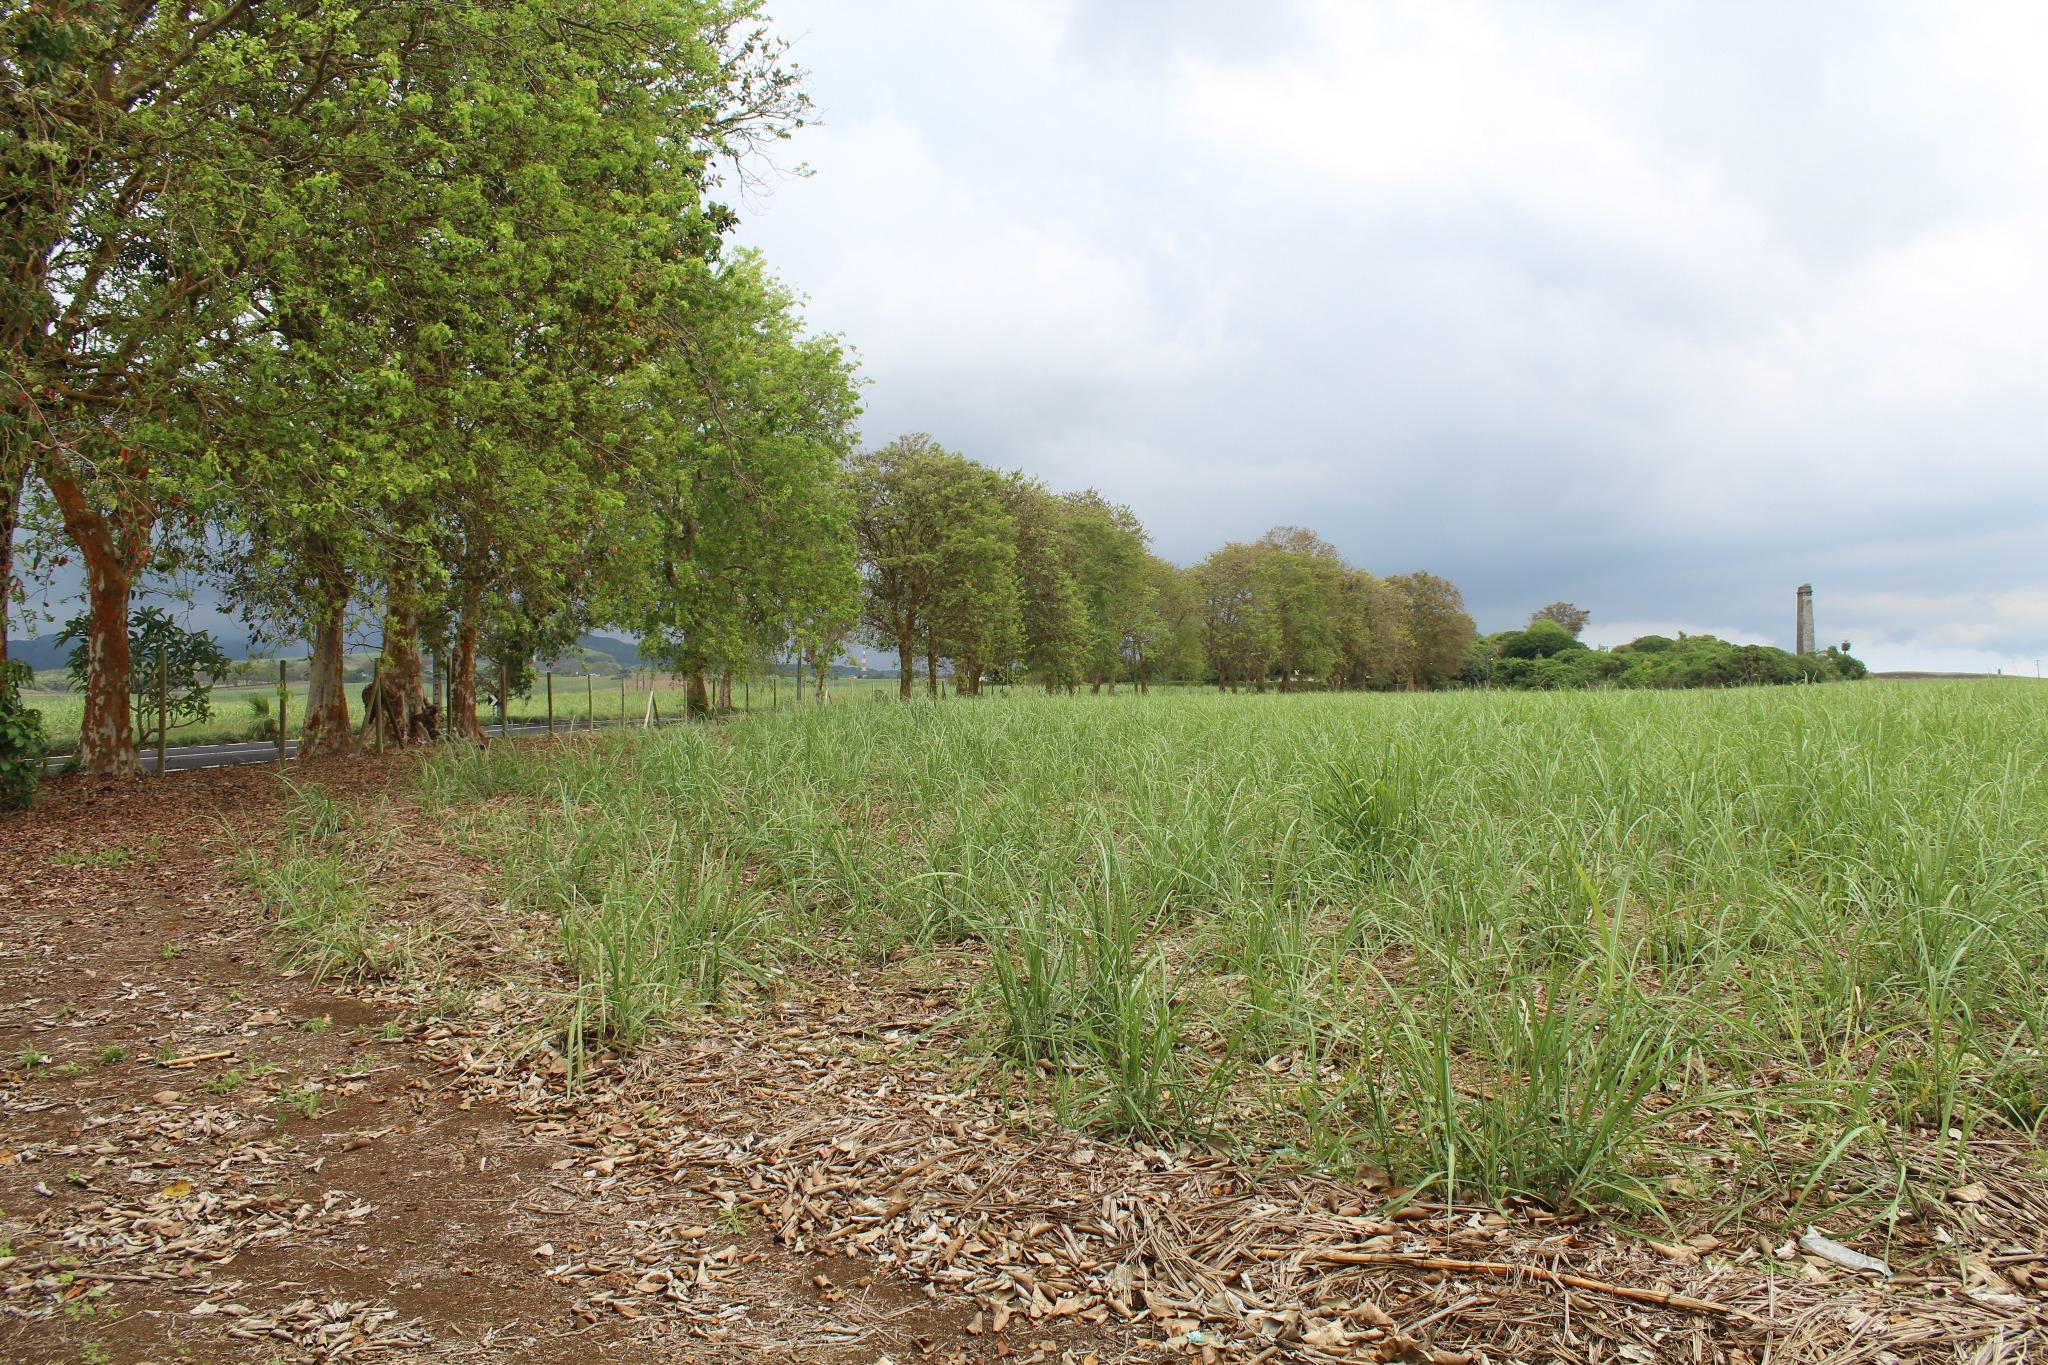 FOR SALE – Agricultural land of 4 acres on the main road in Petite Julie.